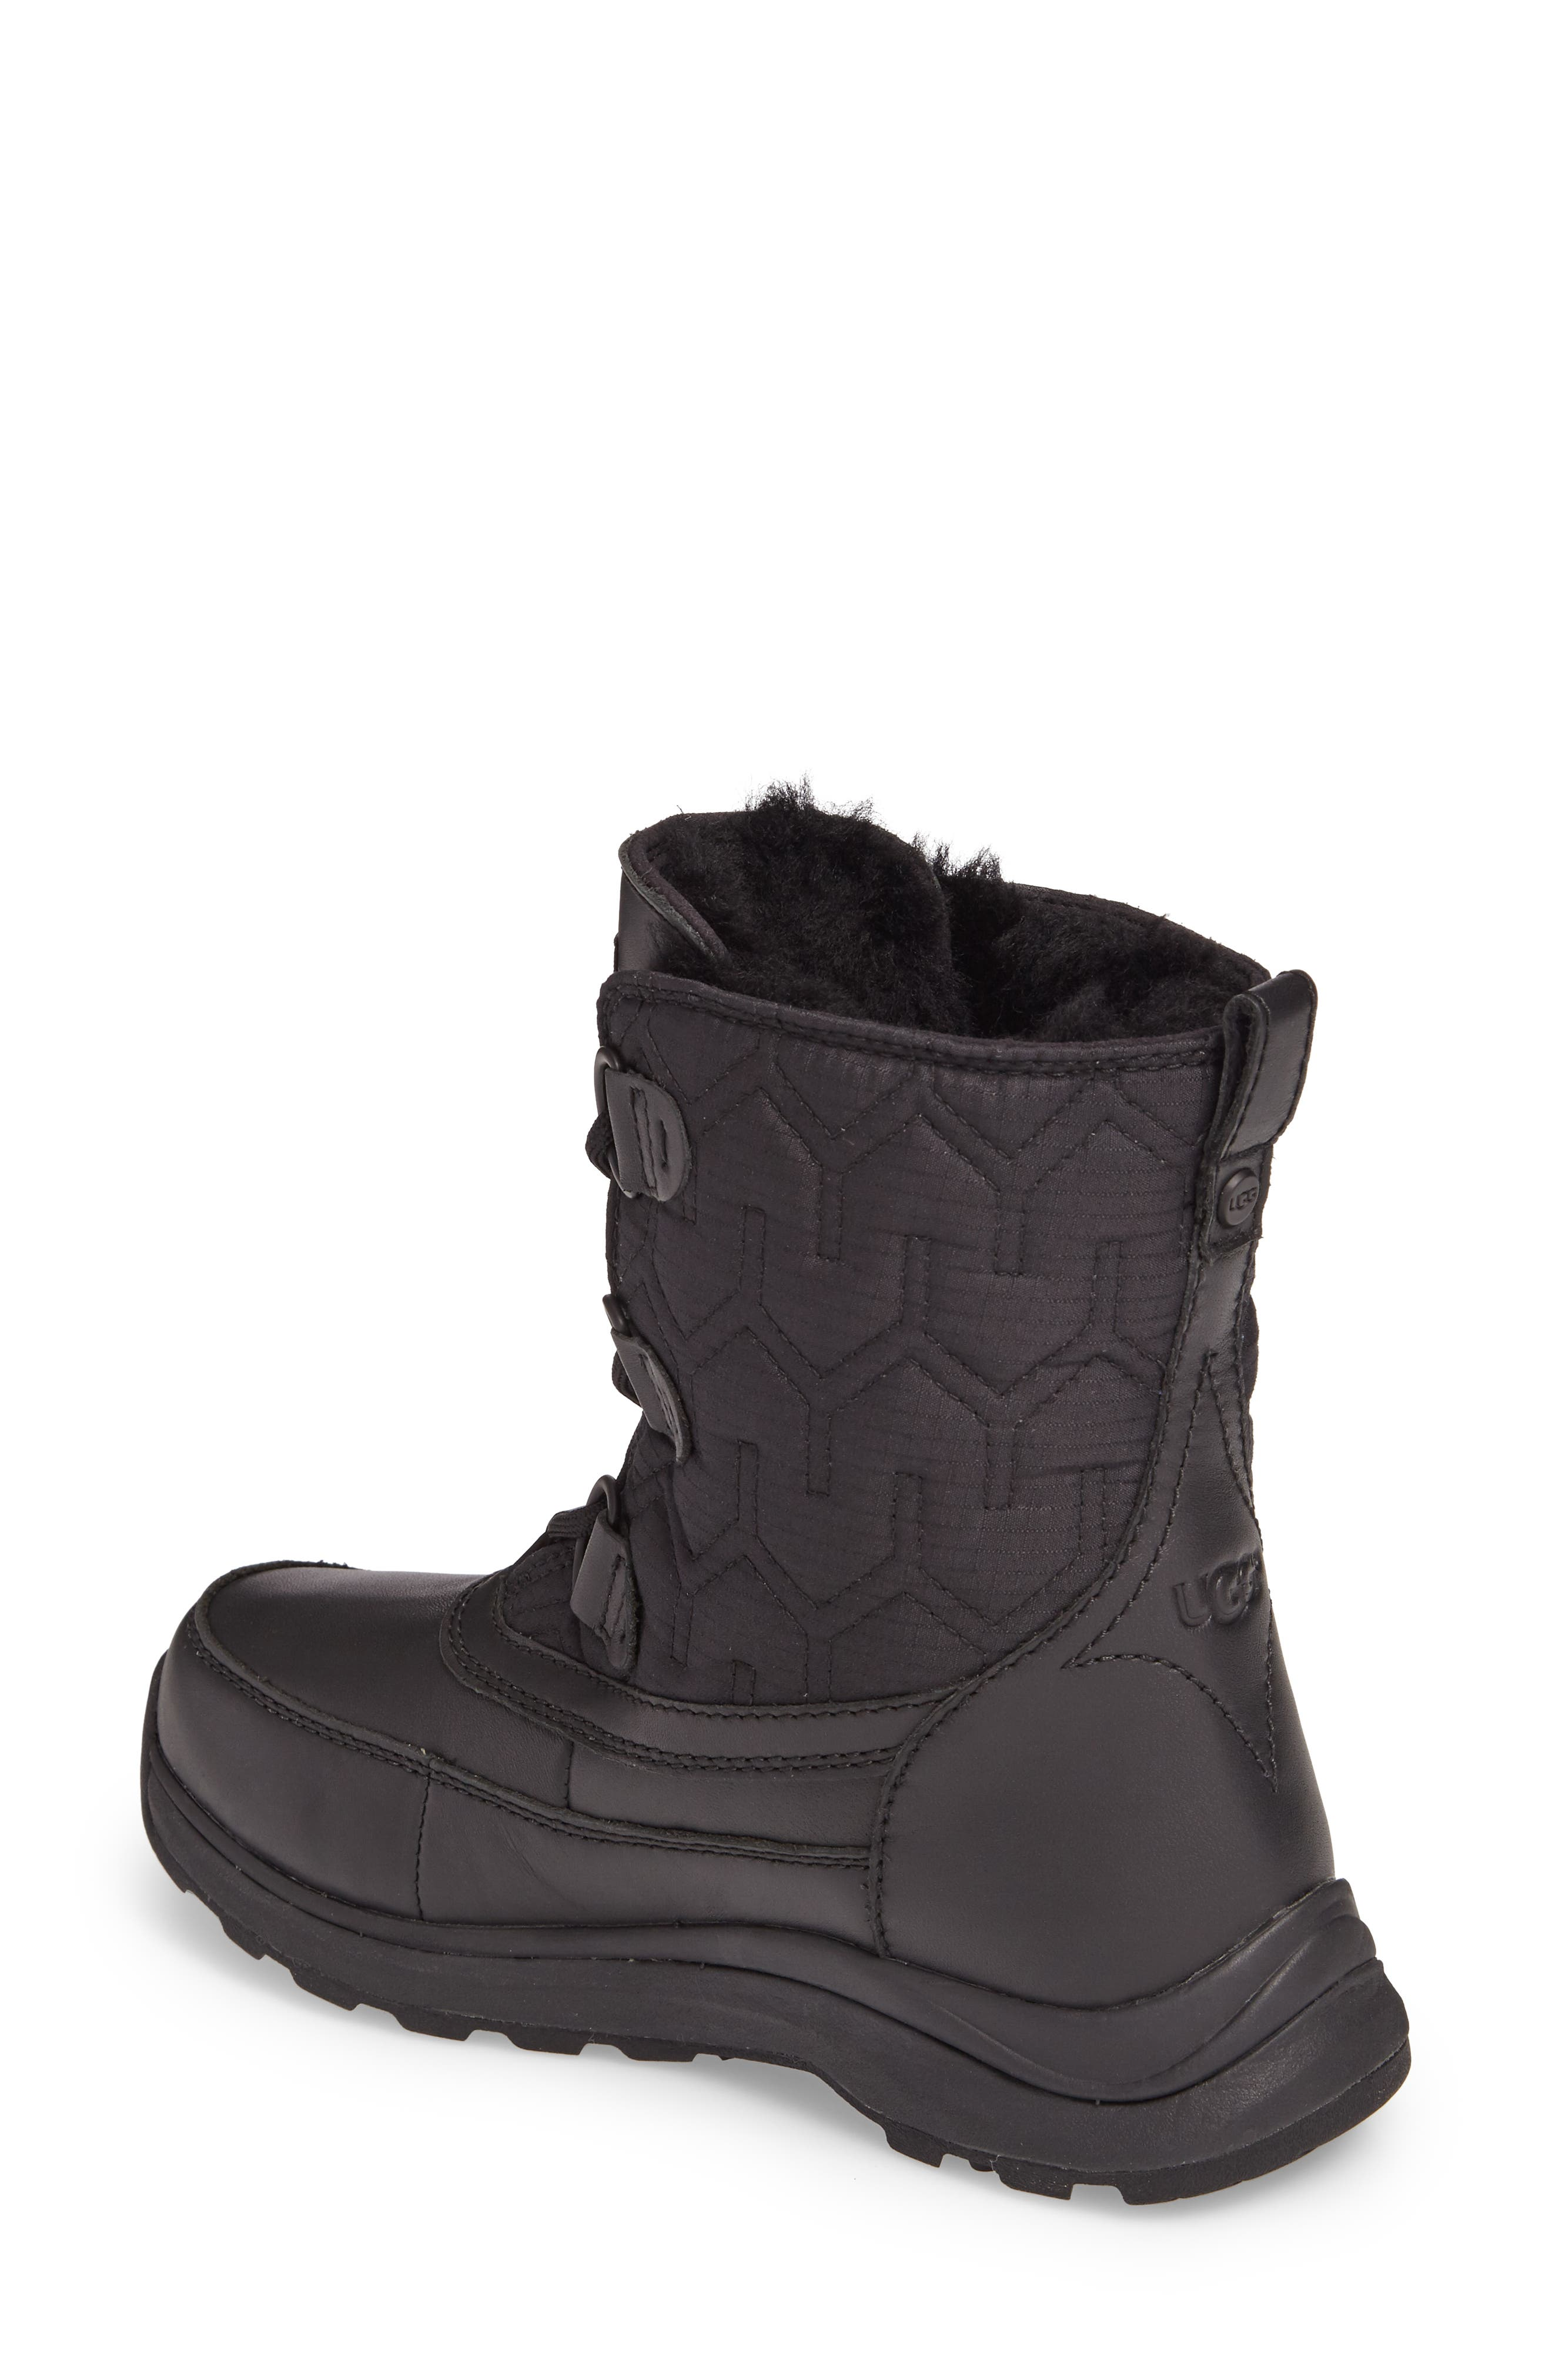 Alternate Image 2  - UGG® Lachlan Waterproof Insulated Snow Boot (Women)